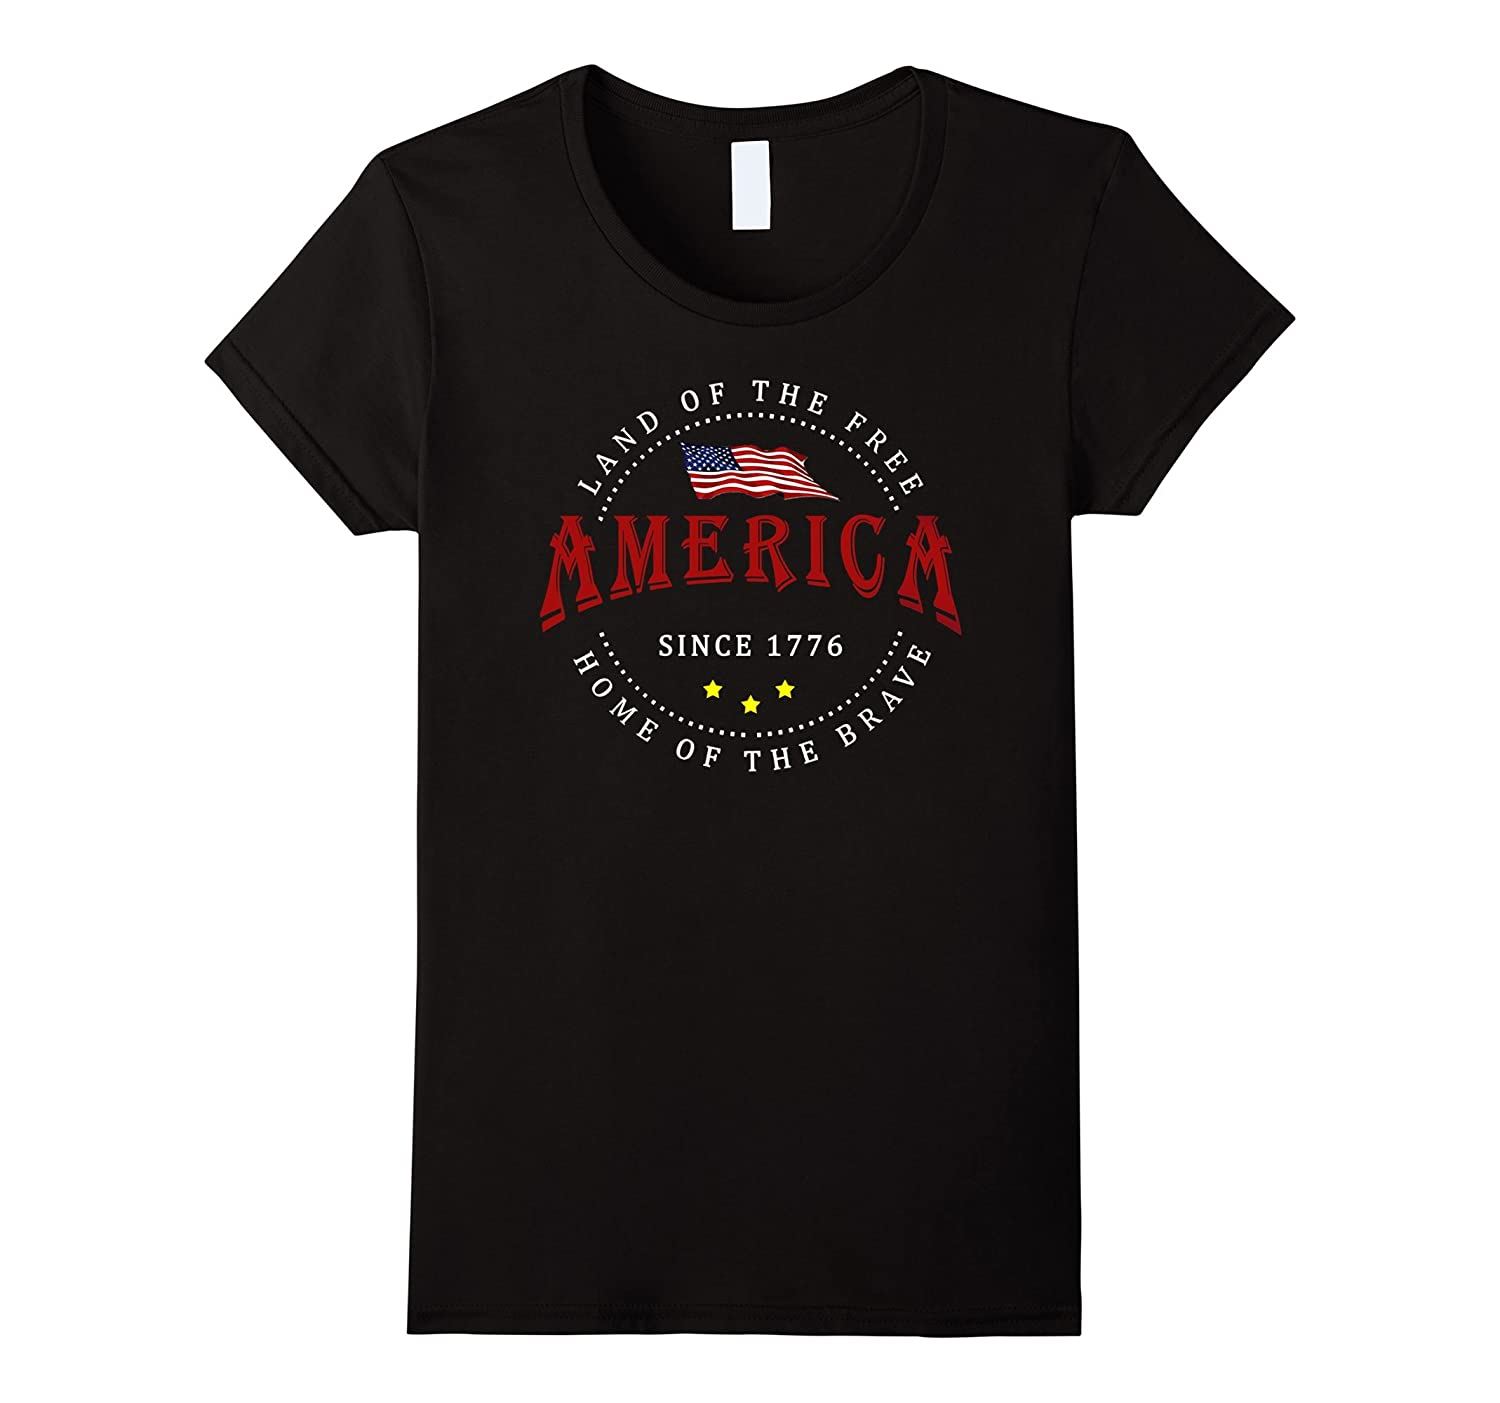 America Land Of The Free Home Of the Brave Independence Tees